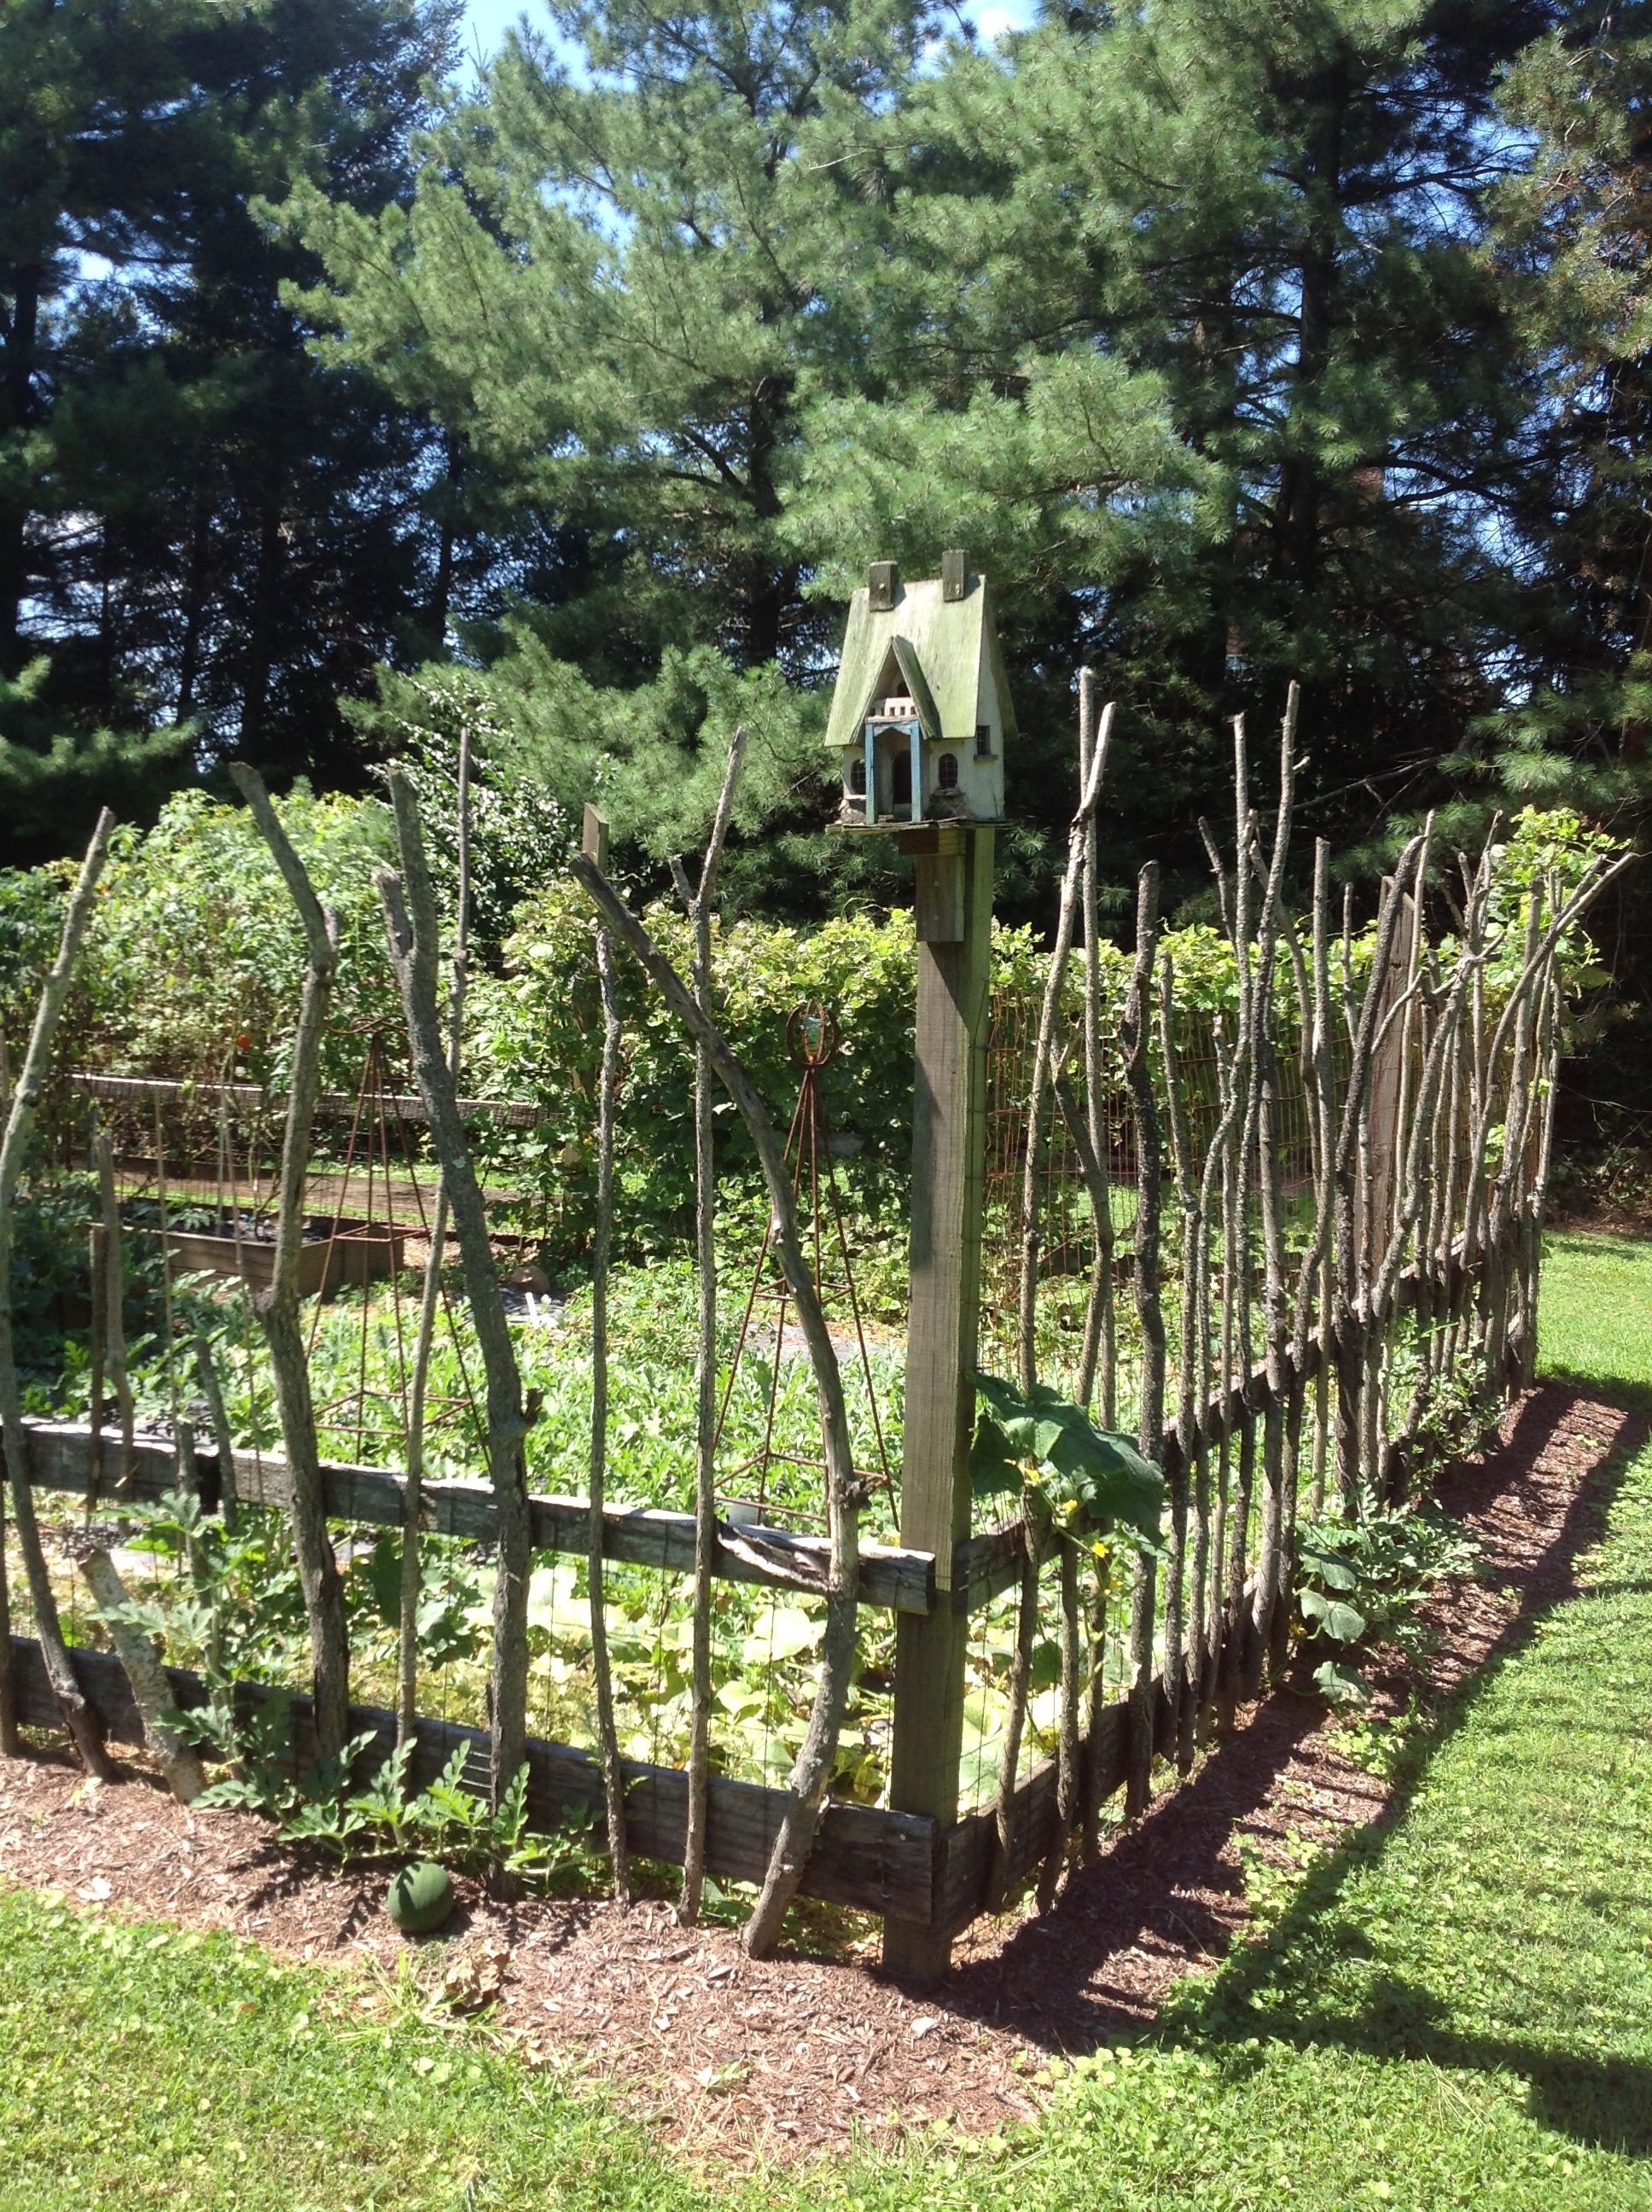 Kitchen Garden Fence Vegetable Garden With Stick Fencing Awesome At Keeping Deer At